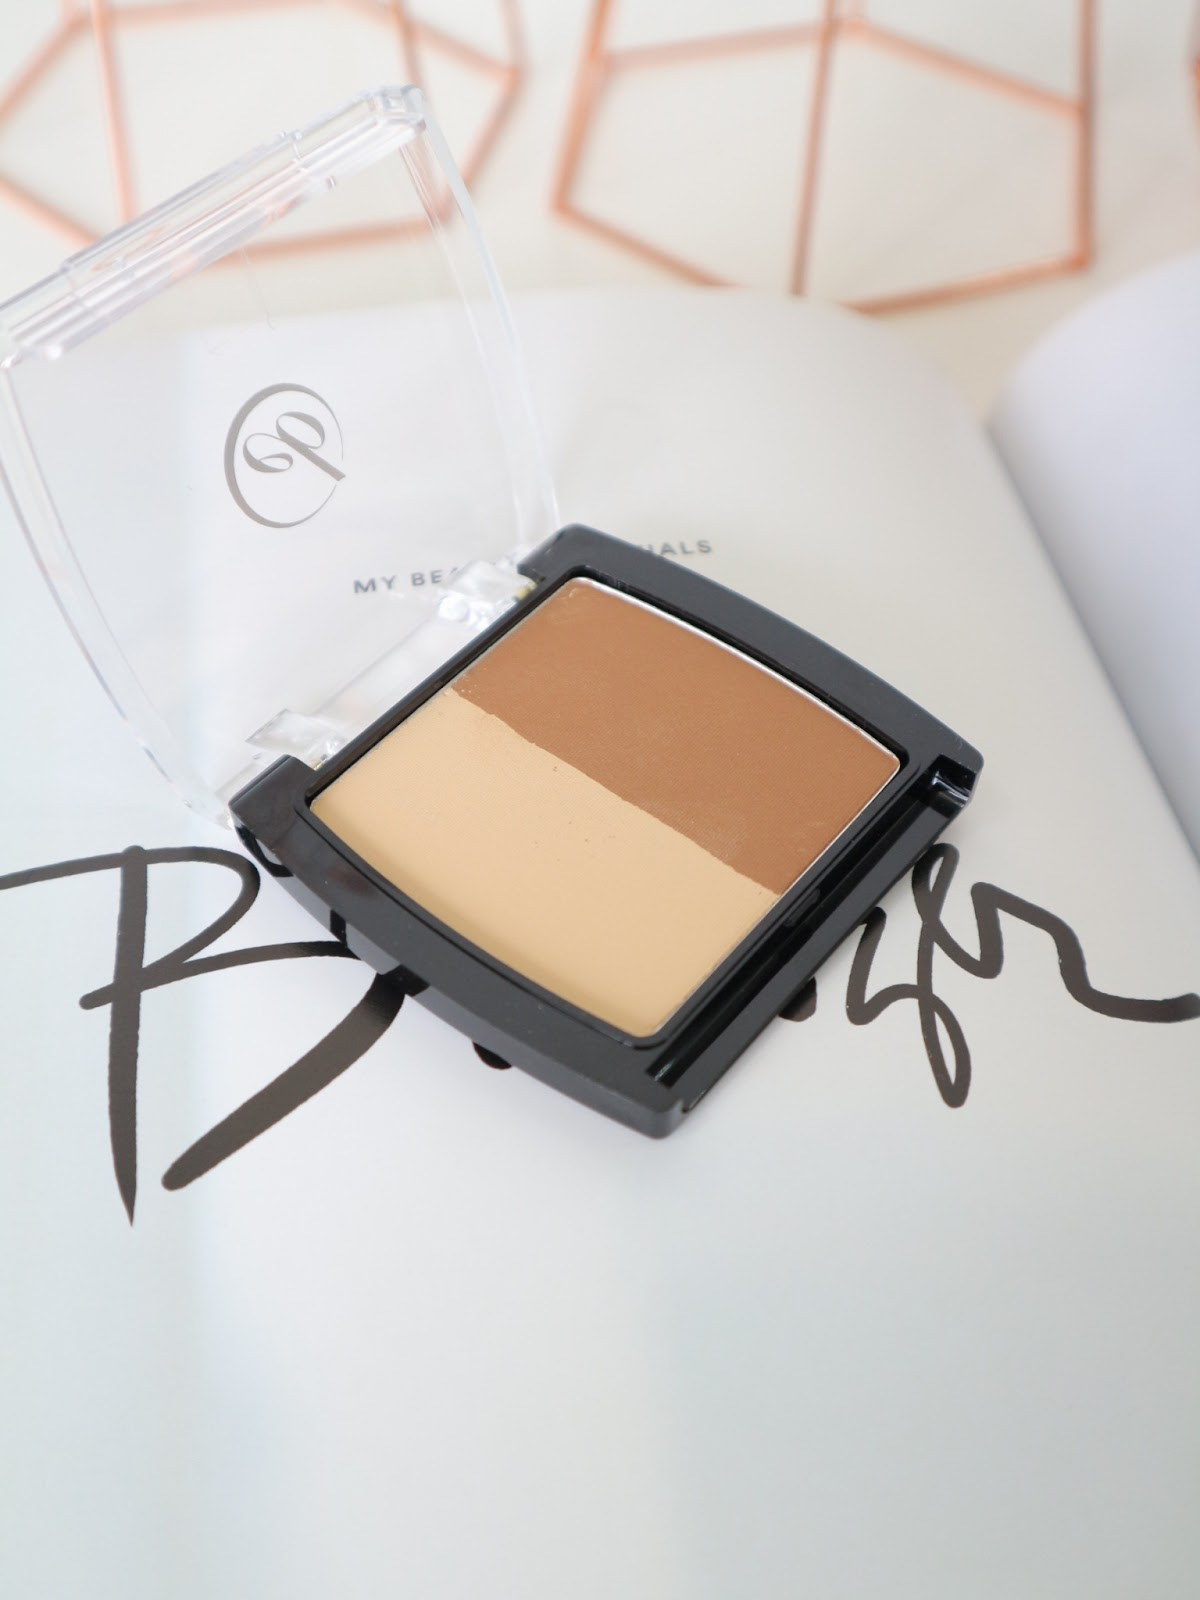 Ever Bilena Contour Kit Duo Review and Swatch